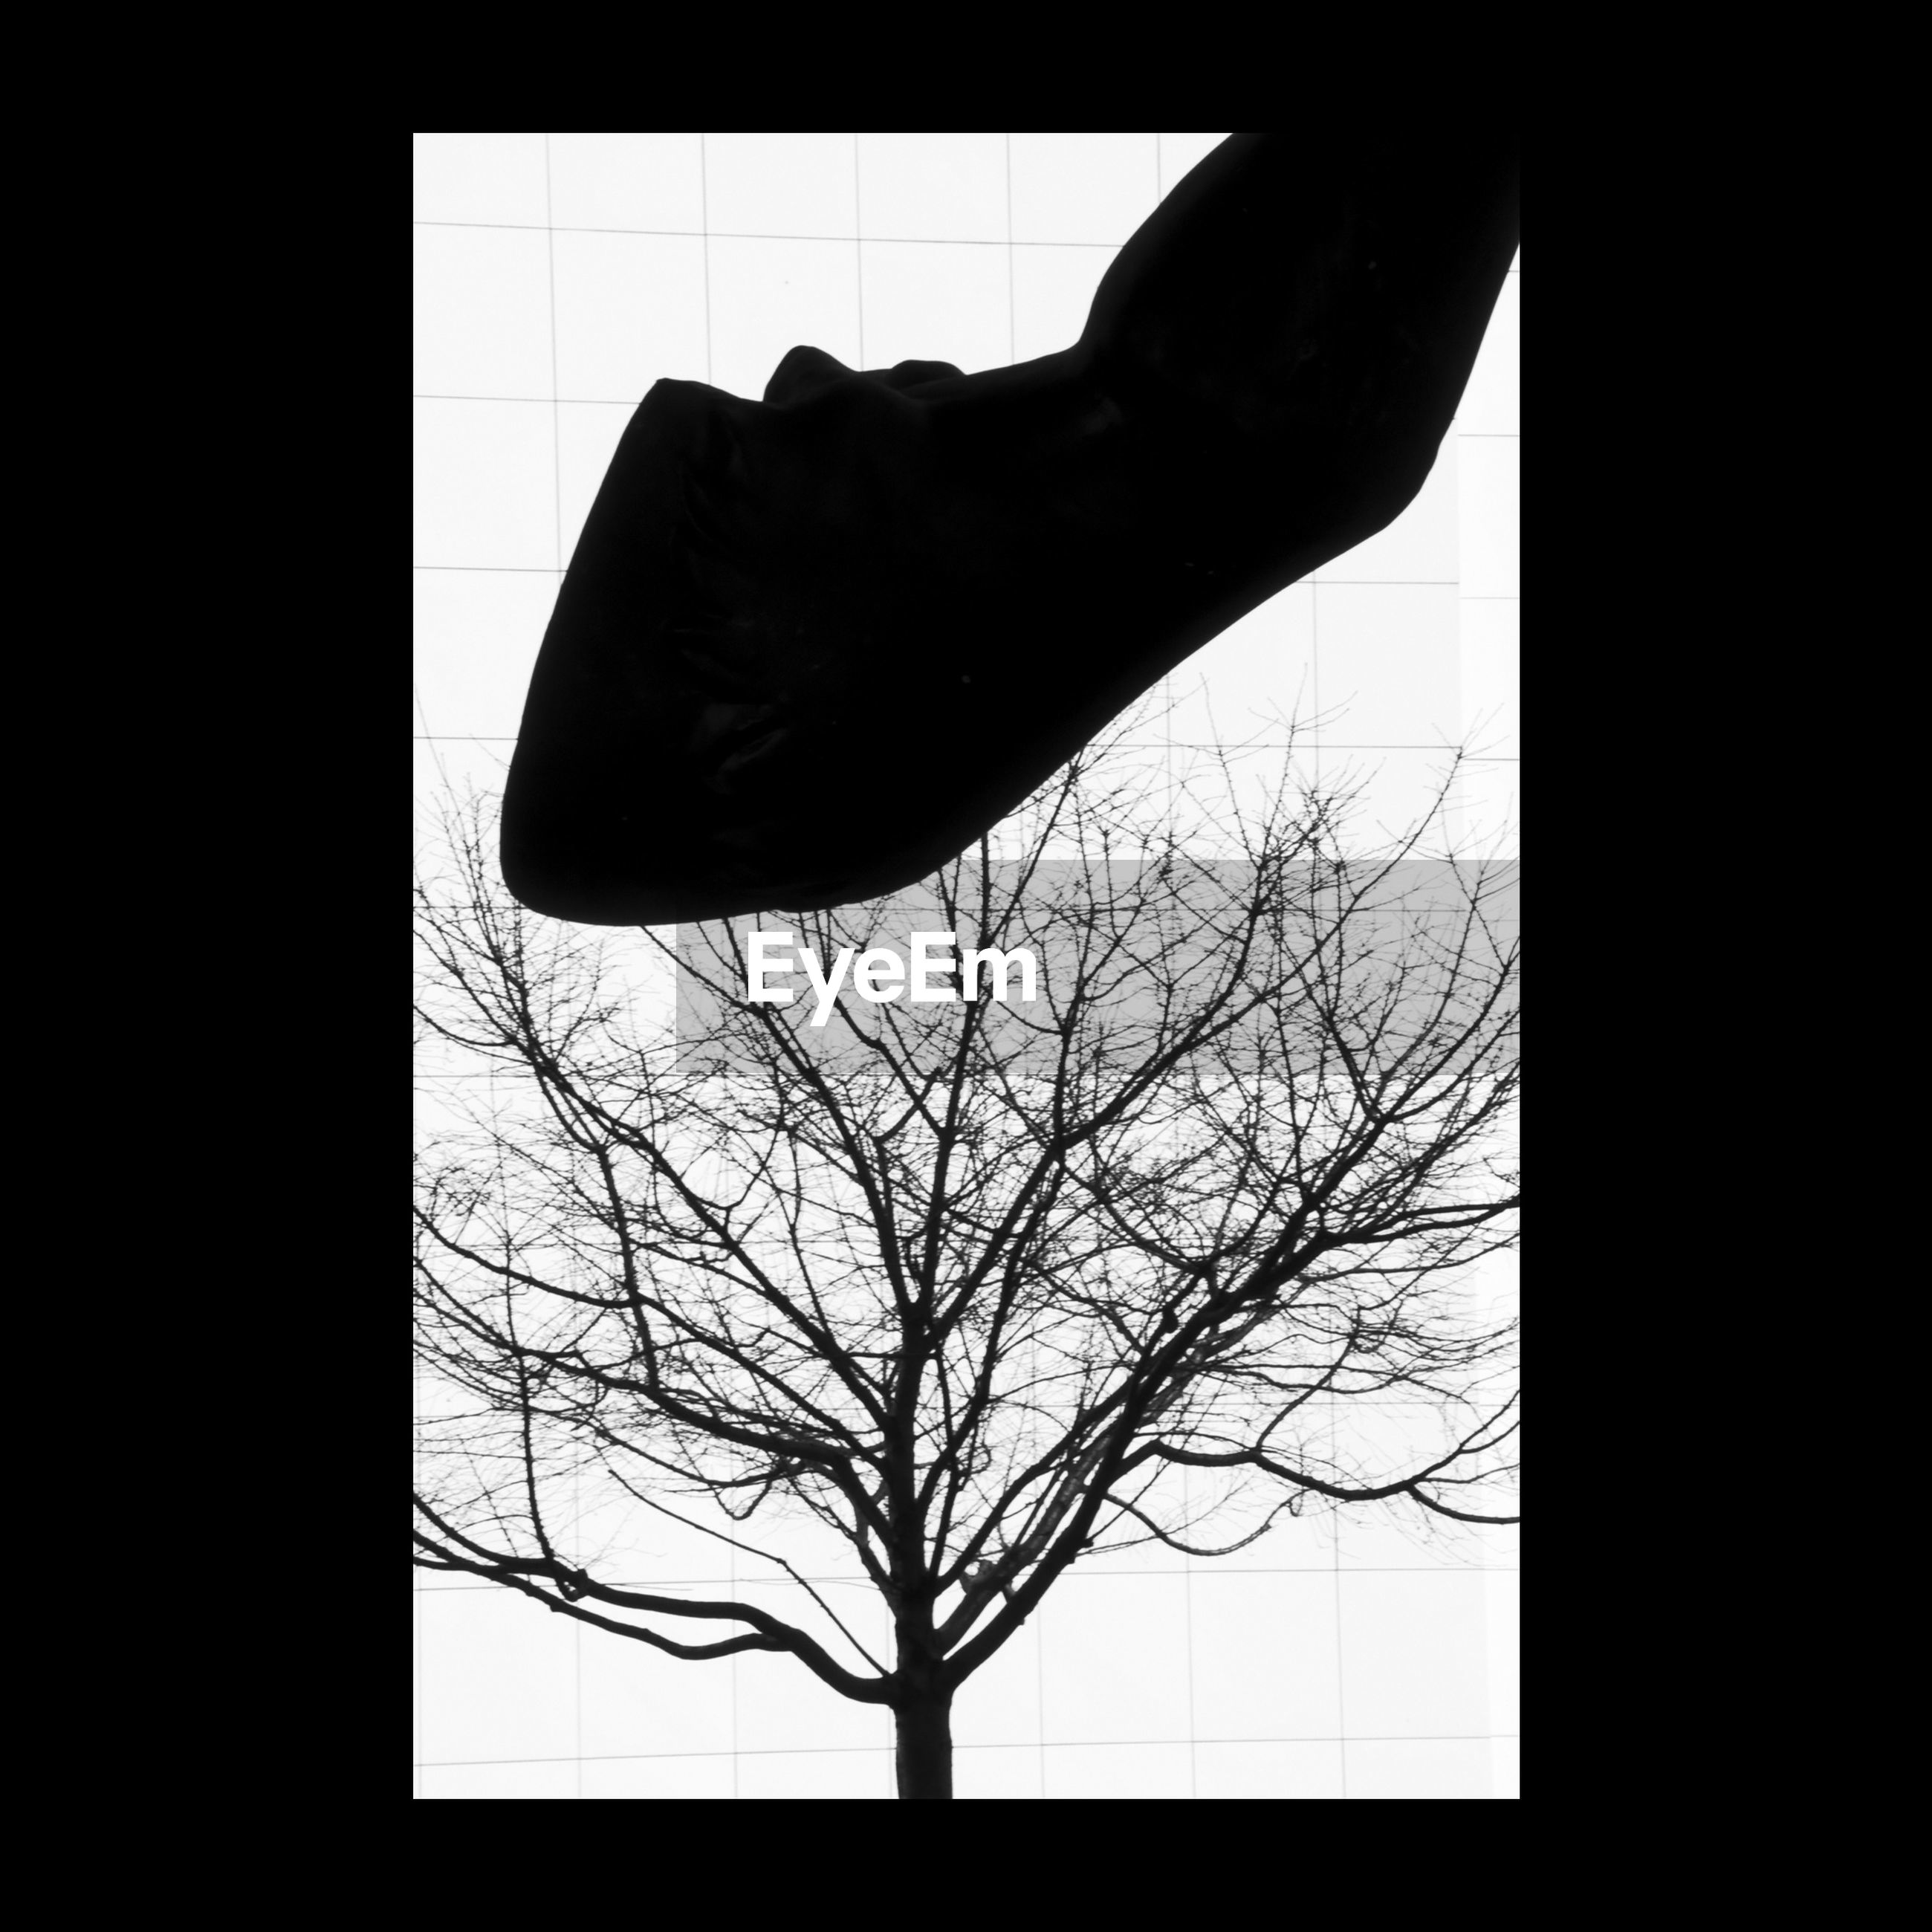 silhouette, branch, transfer print, animal themes, one animal, tree, bare tree, auto post production filter, wildlife, indoors, nature, copy space, close-up, beauty in nature, clear sky, vignette, one person, animals in the wild, studio shot